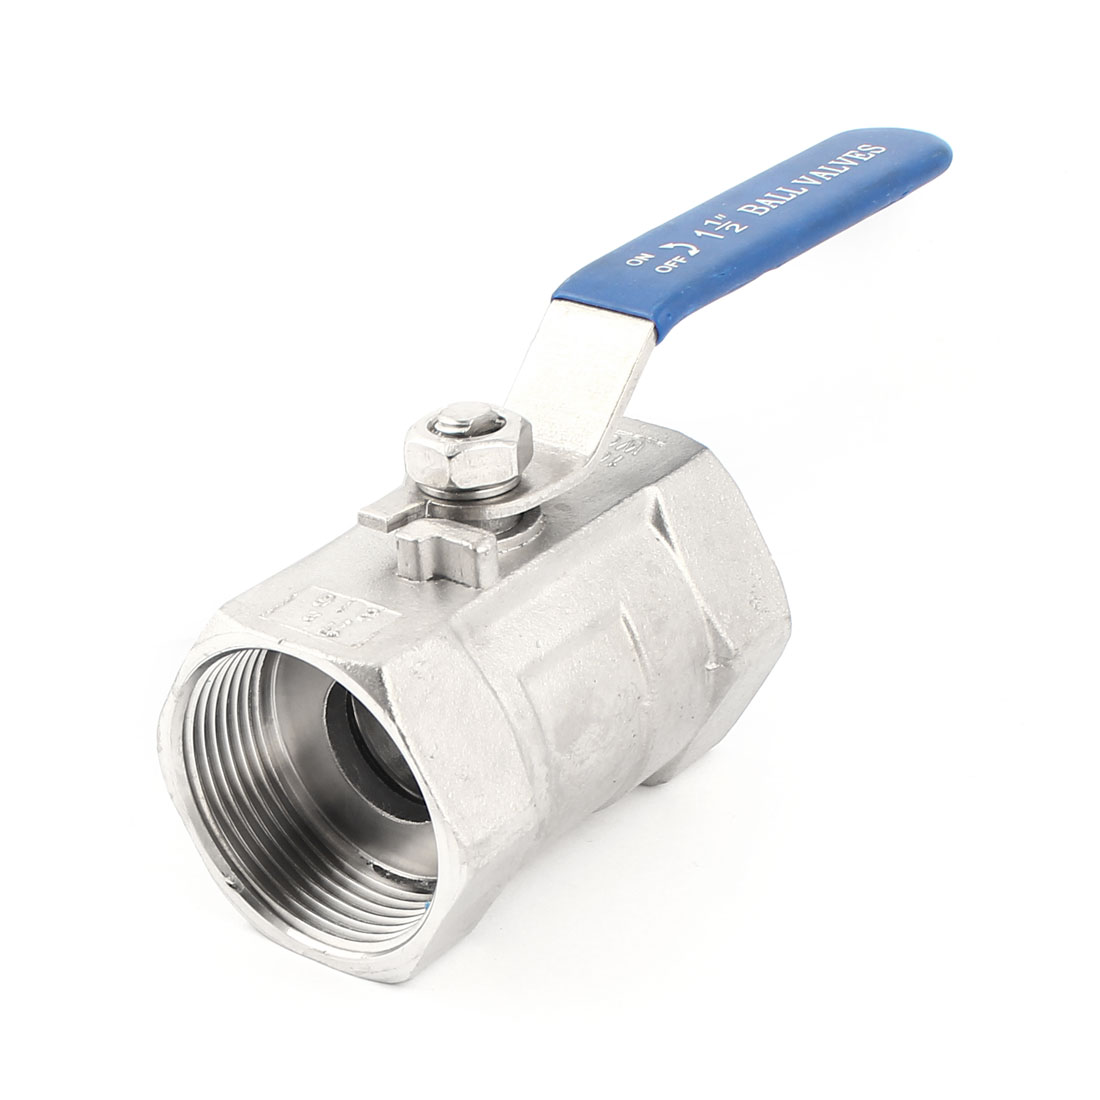 DN40 1 1/2PT 45mm Female Full Port 90 Degree Rotary Water Flow Control Stainless Steel Ball Valve